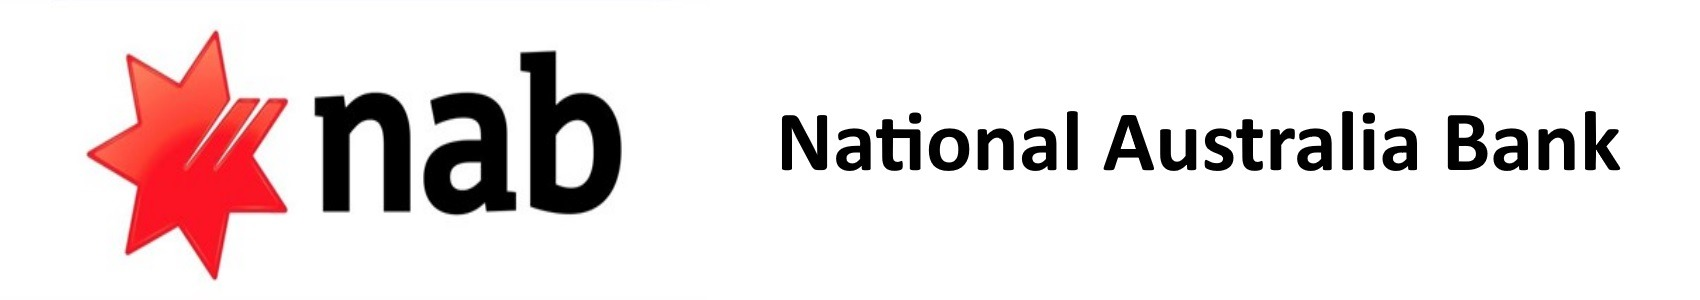 National Australia Bank, микрозаймы